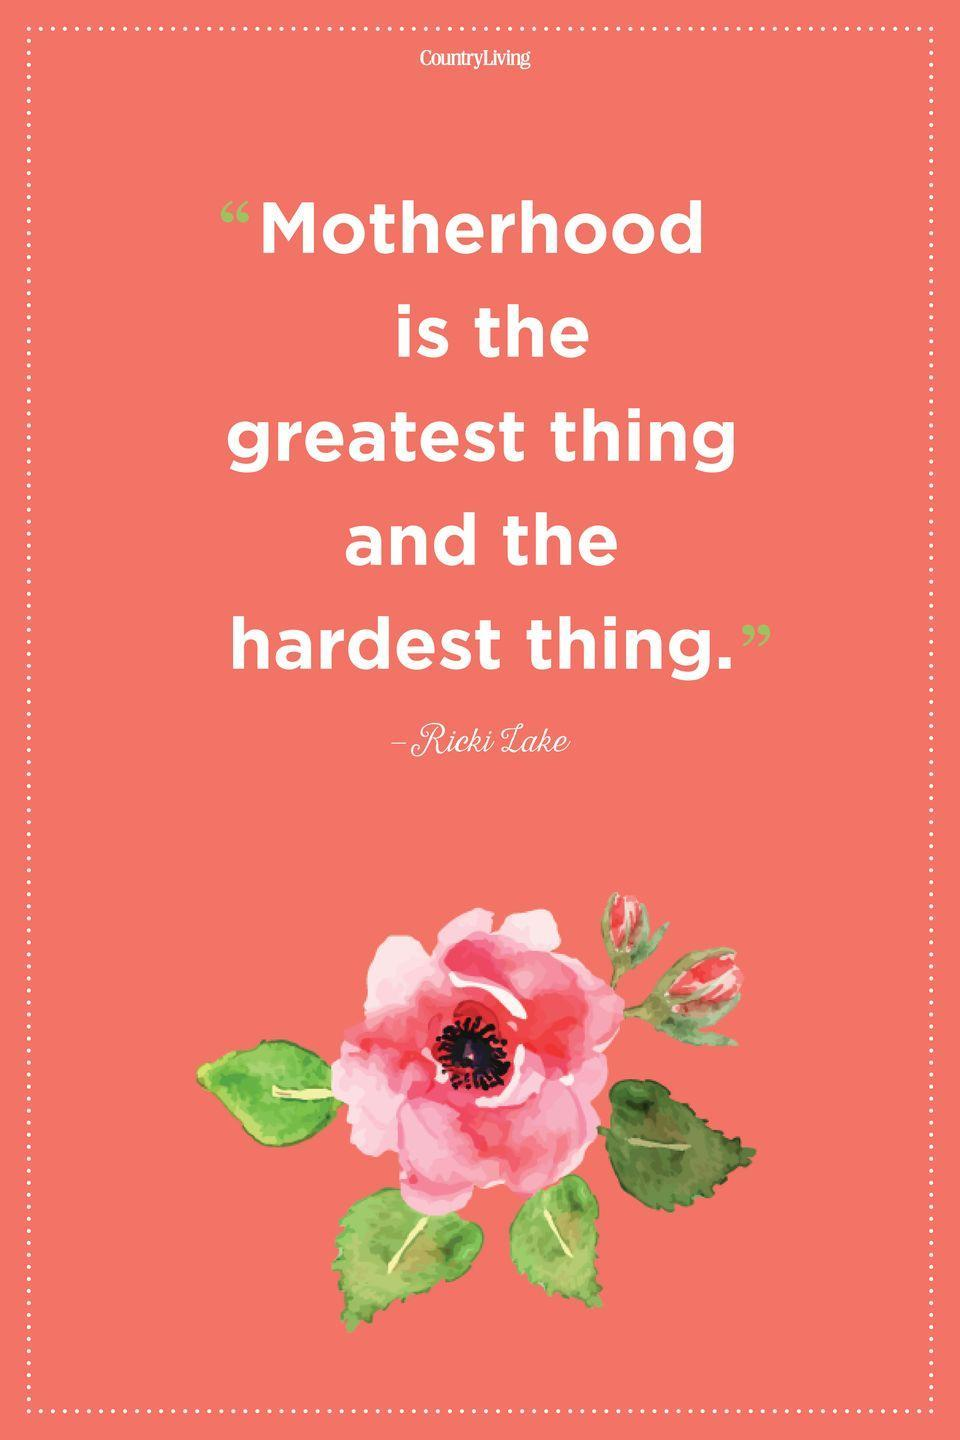 "<p>""Motherhood is the greatest thing and the hardest thing.""</p>"